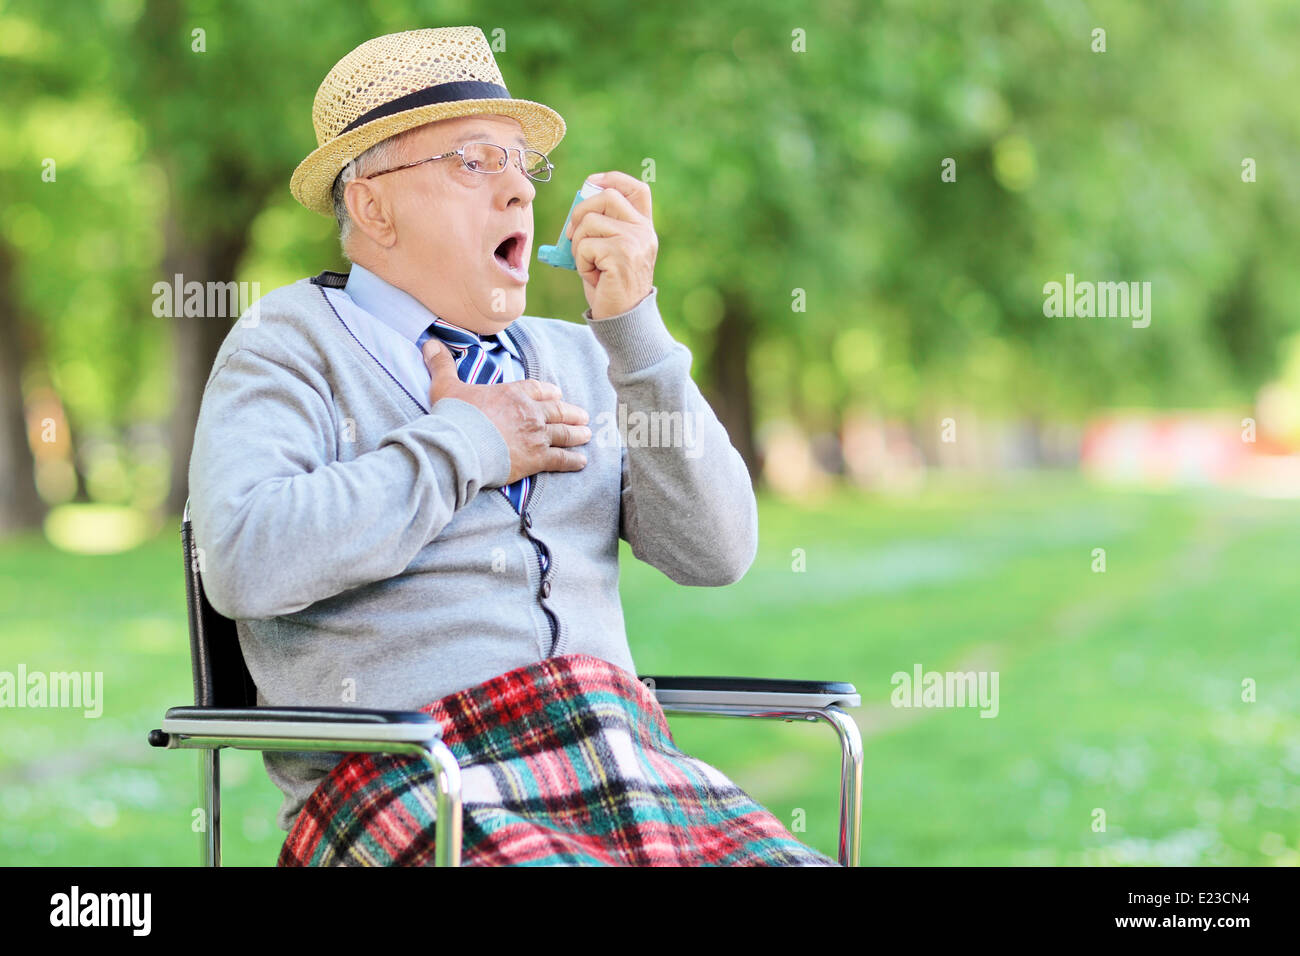 Senior man having an asthma attack in a park - Stock Image